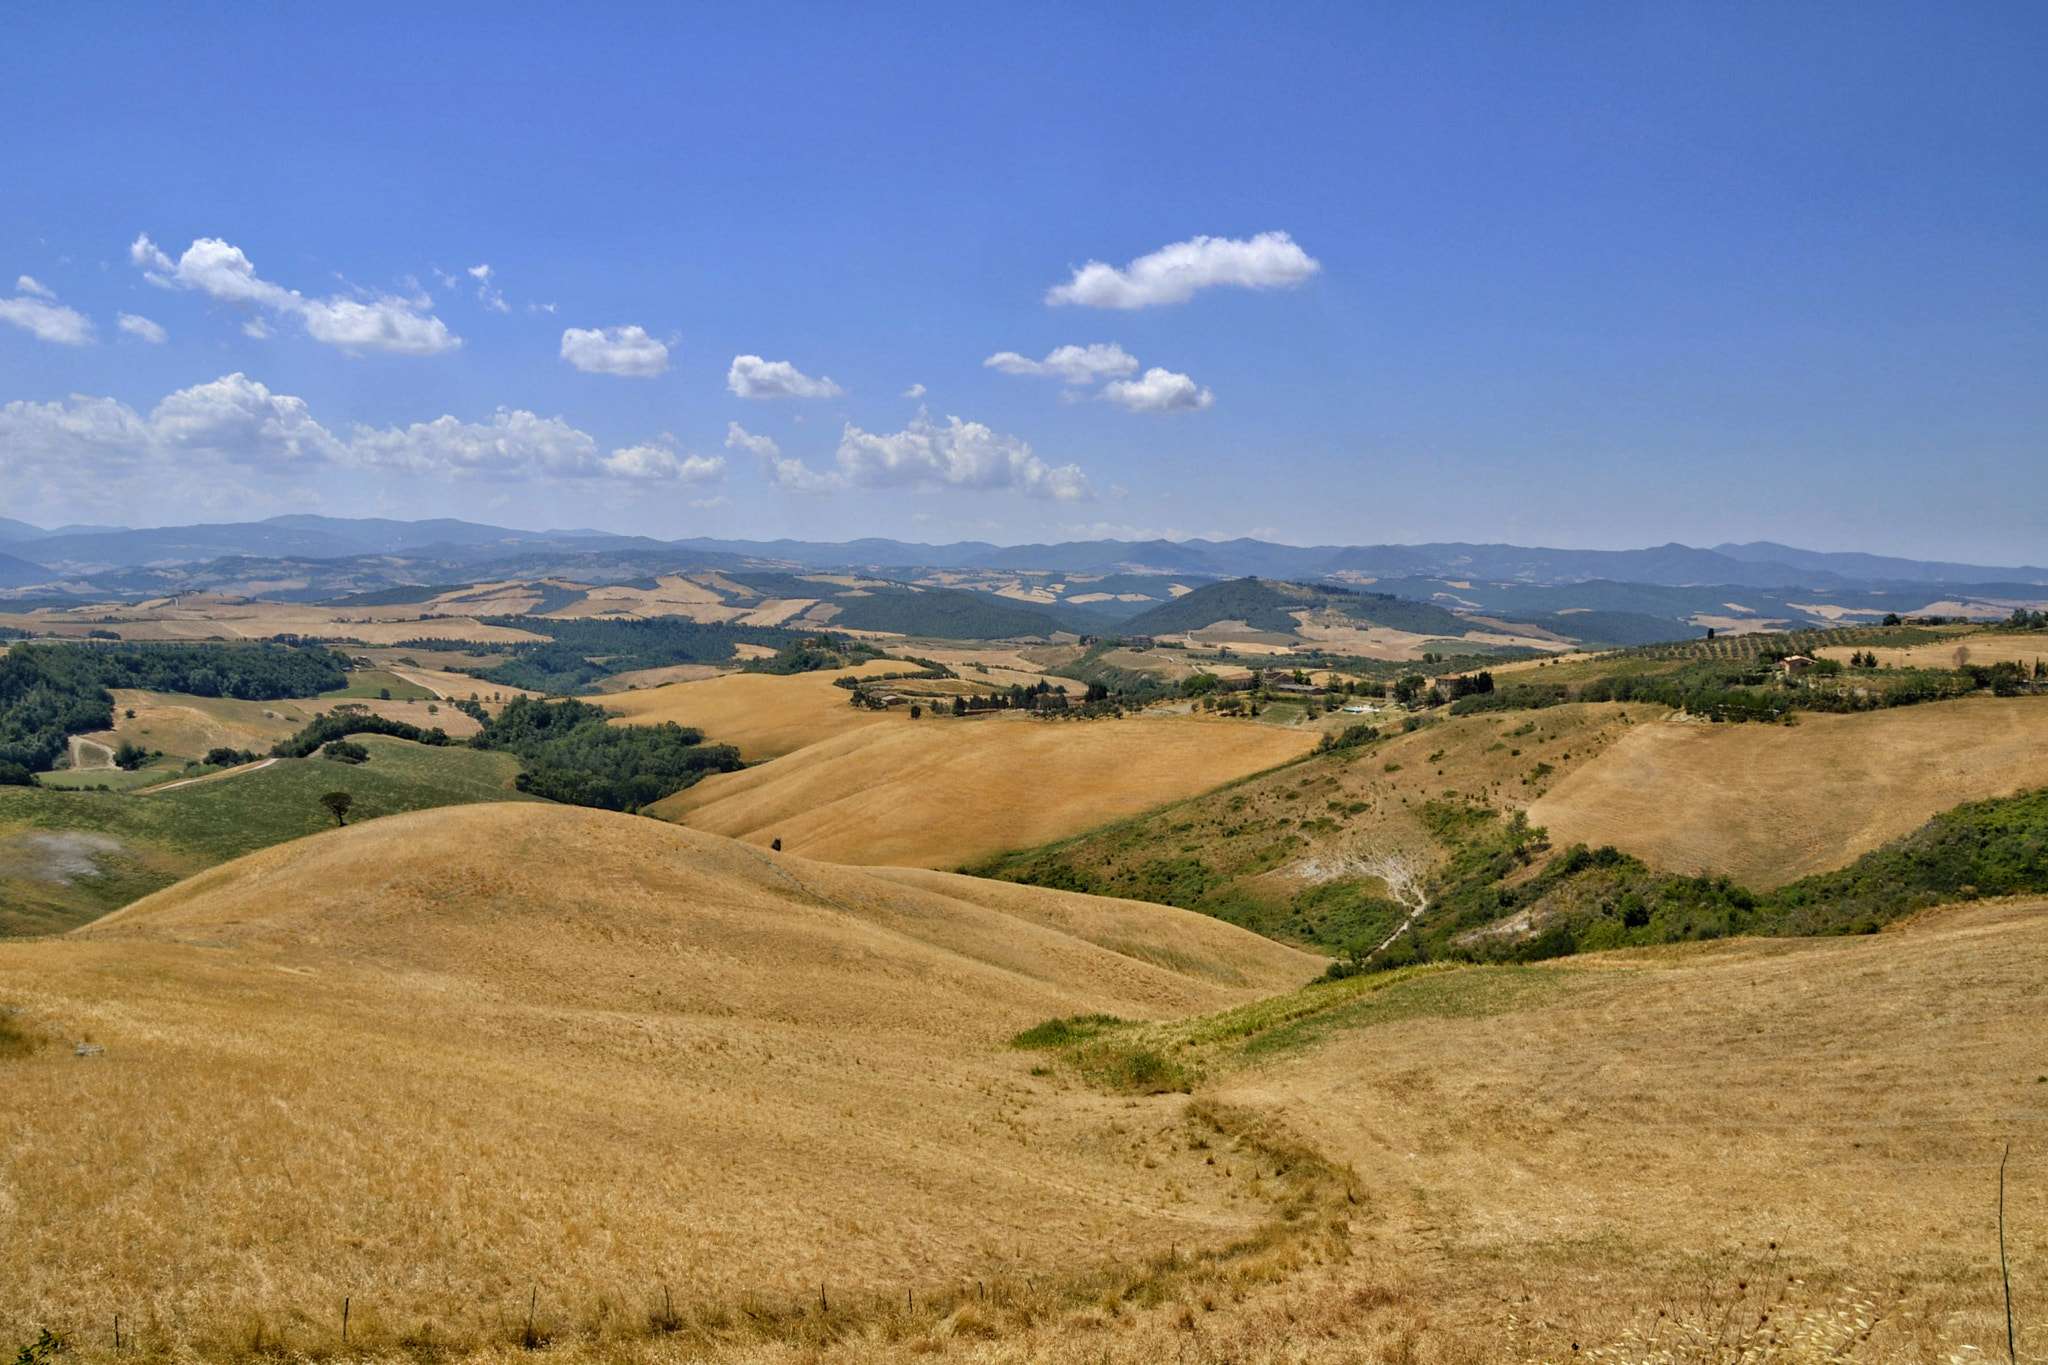 Photograph Tuscany 2 by The Traveller on 500px